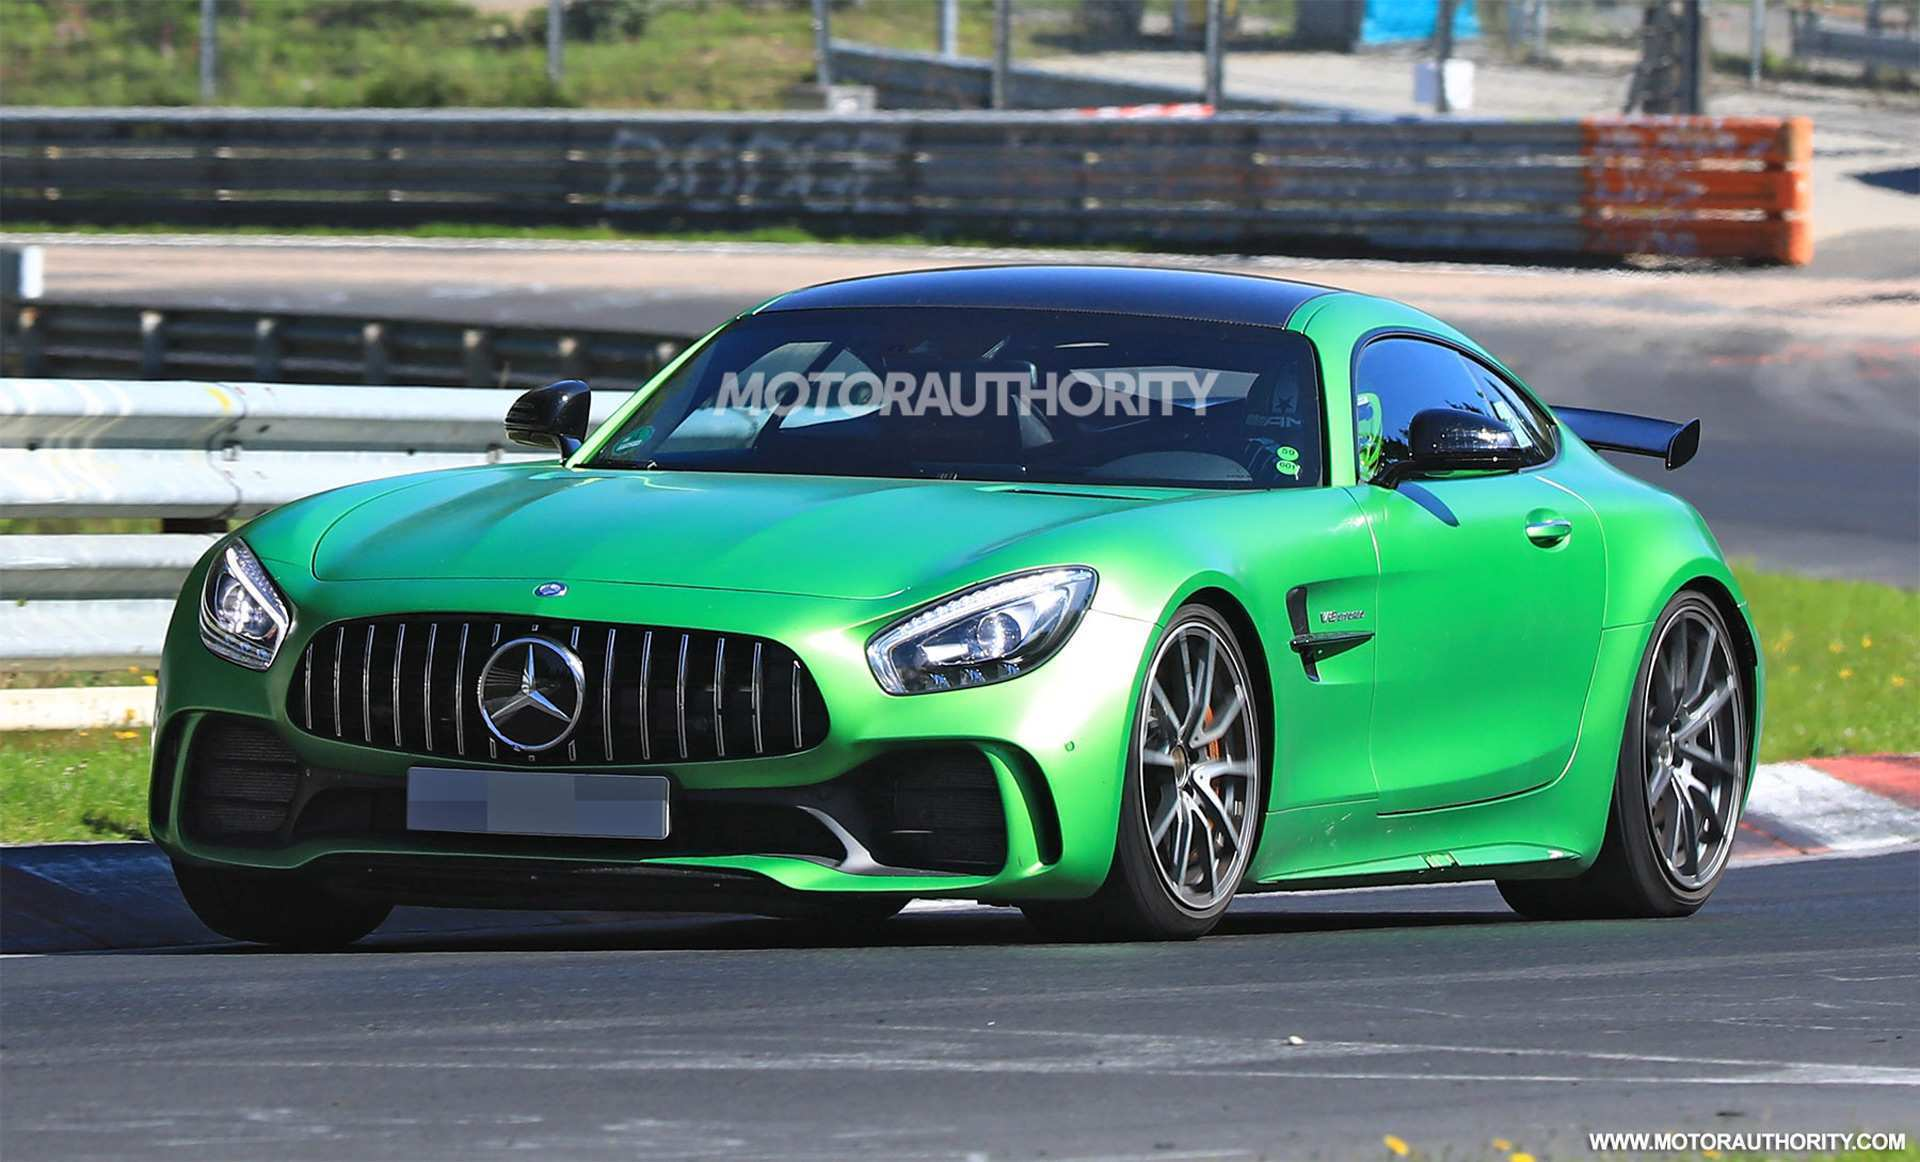 35 Gallery of Mercedes 2019 Amg Gt Images by Mercedes 2019 Amg Gt